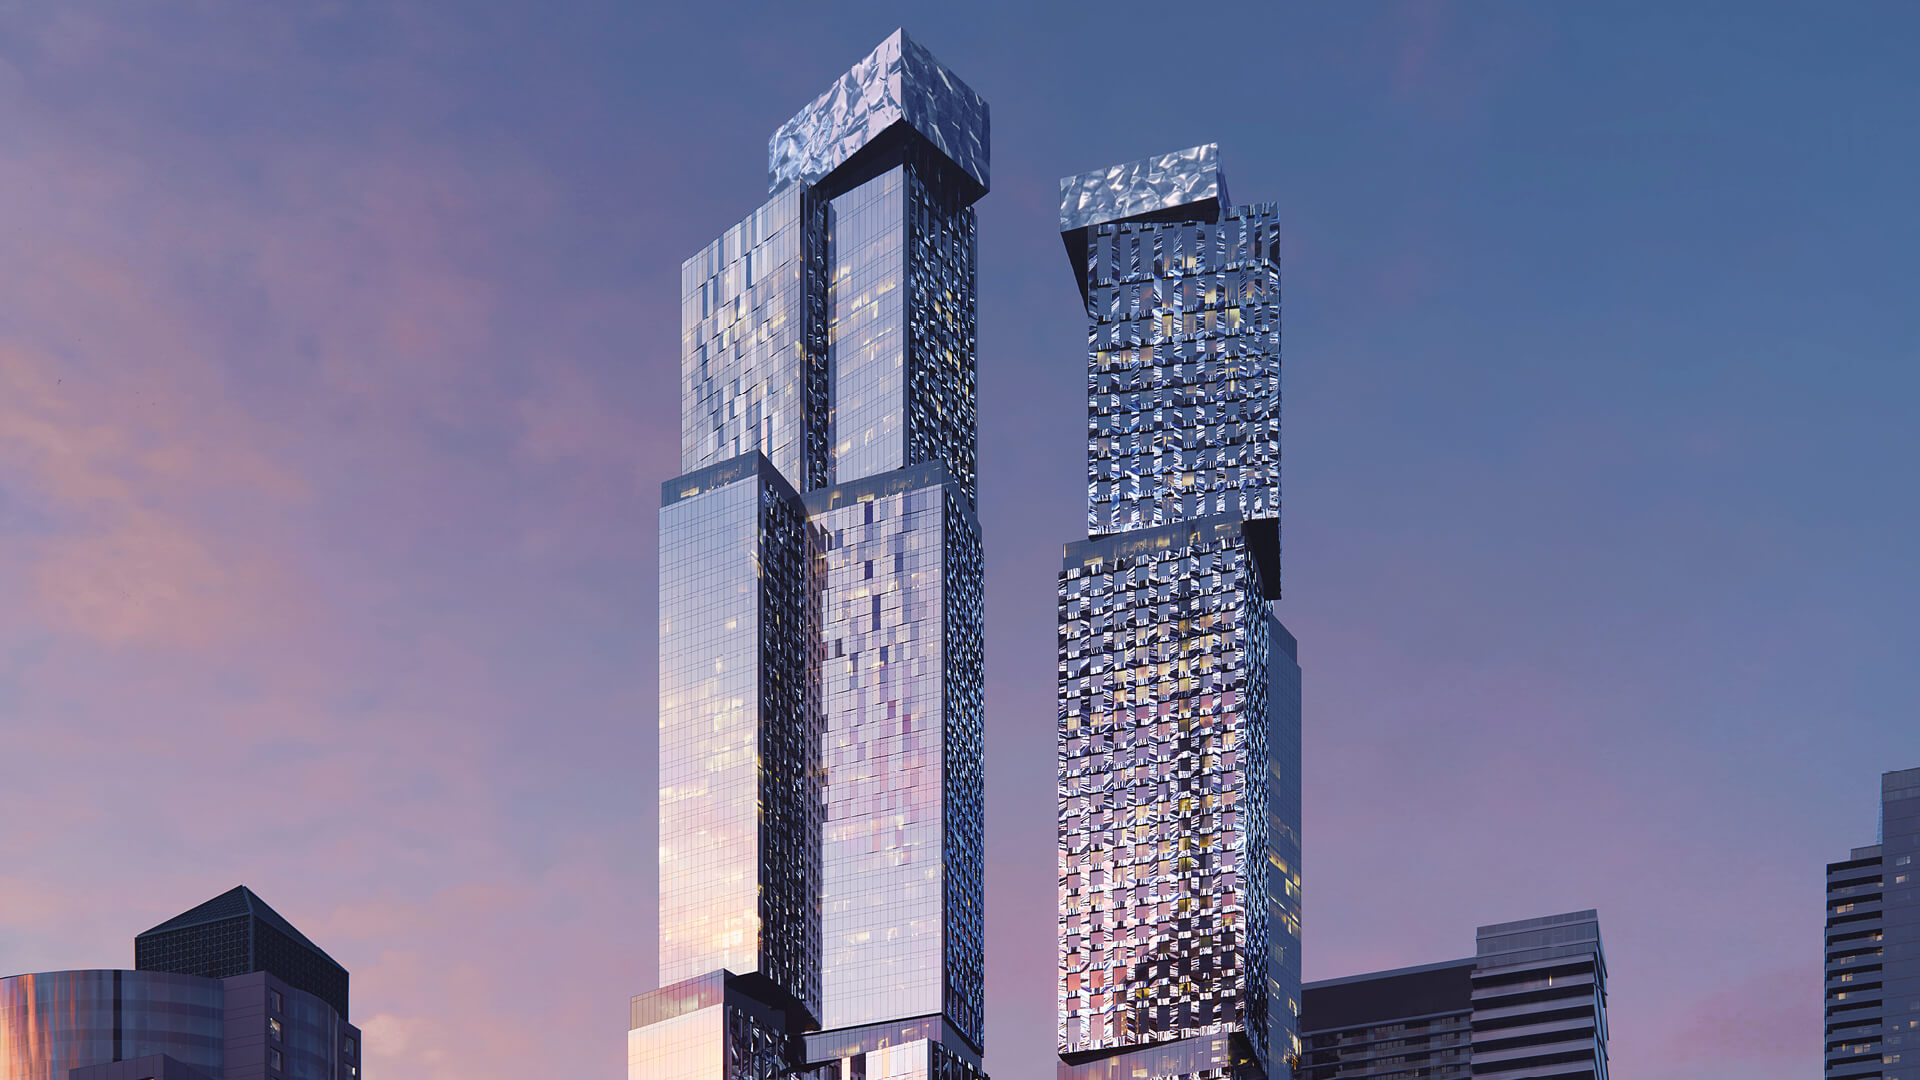 Frank Gehry's twin skyscrapers in Toronto, Canada revealed after more revisions